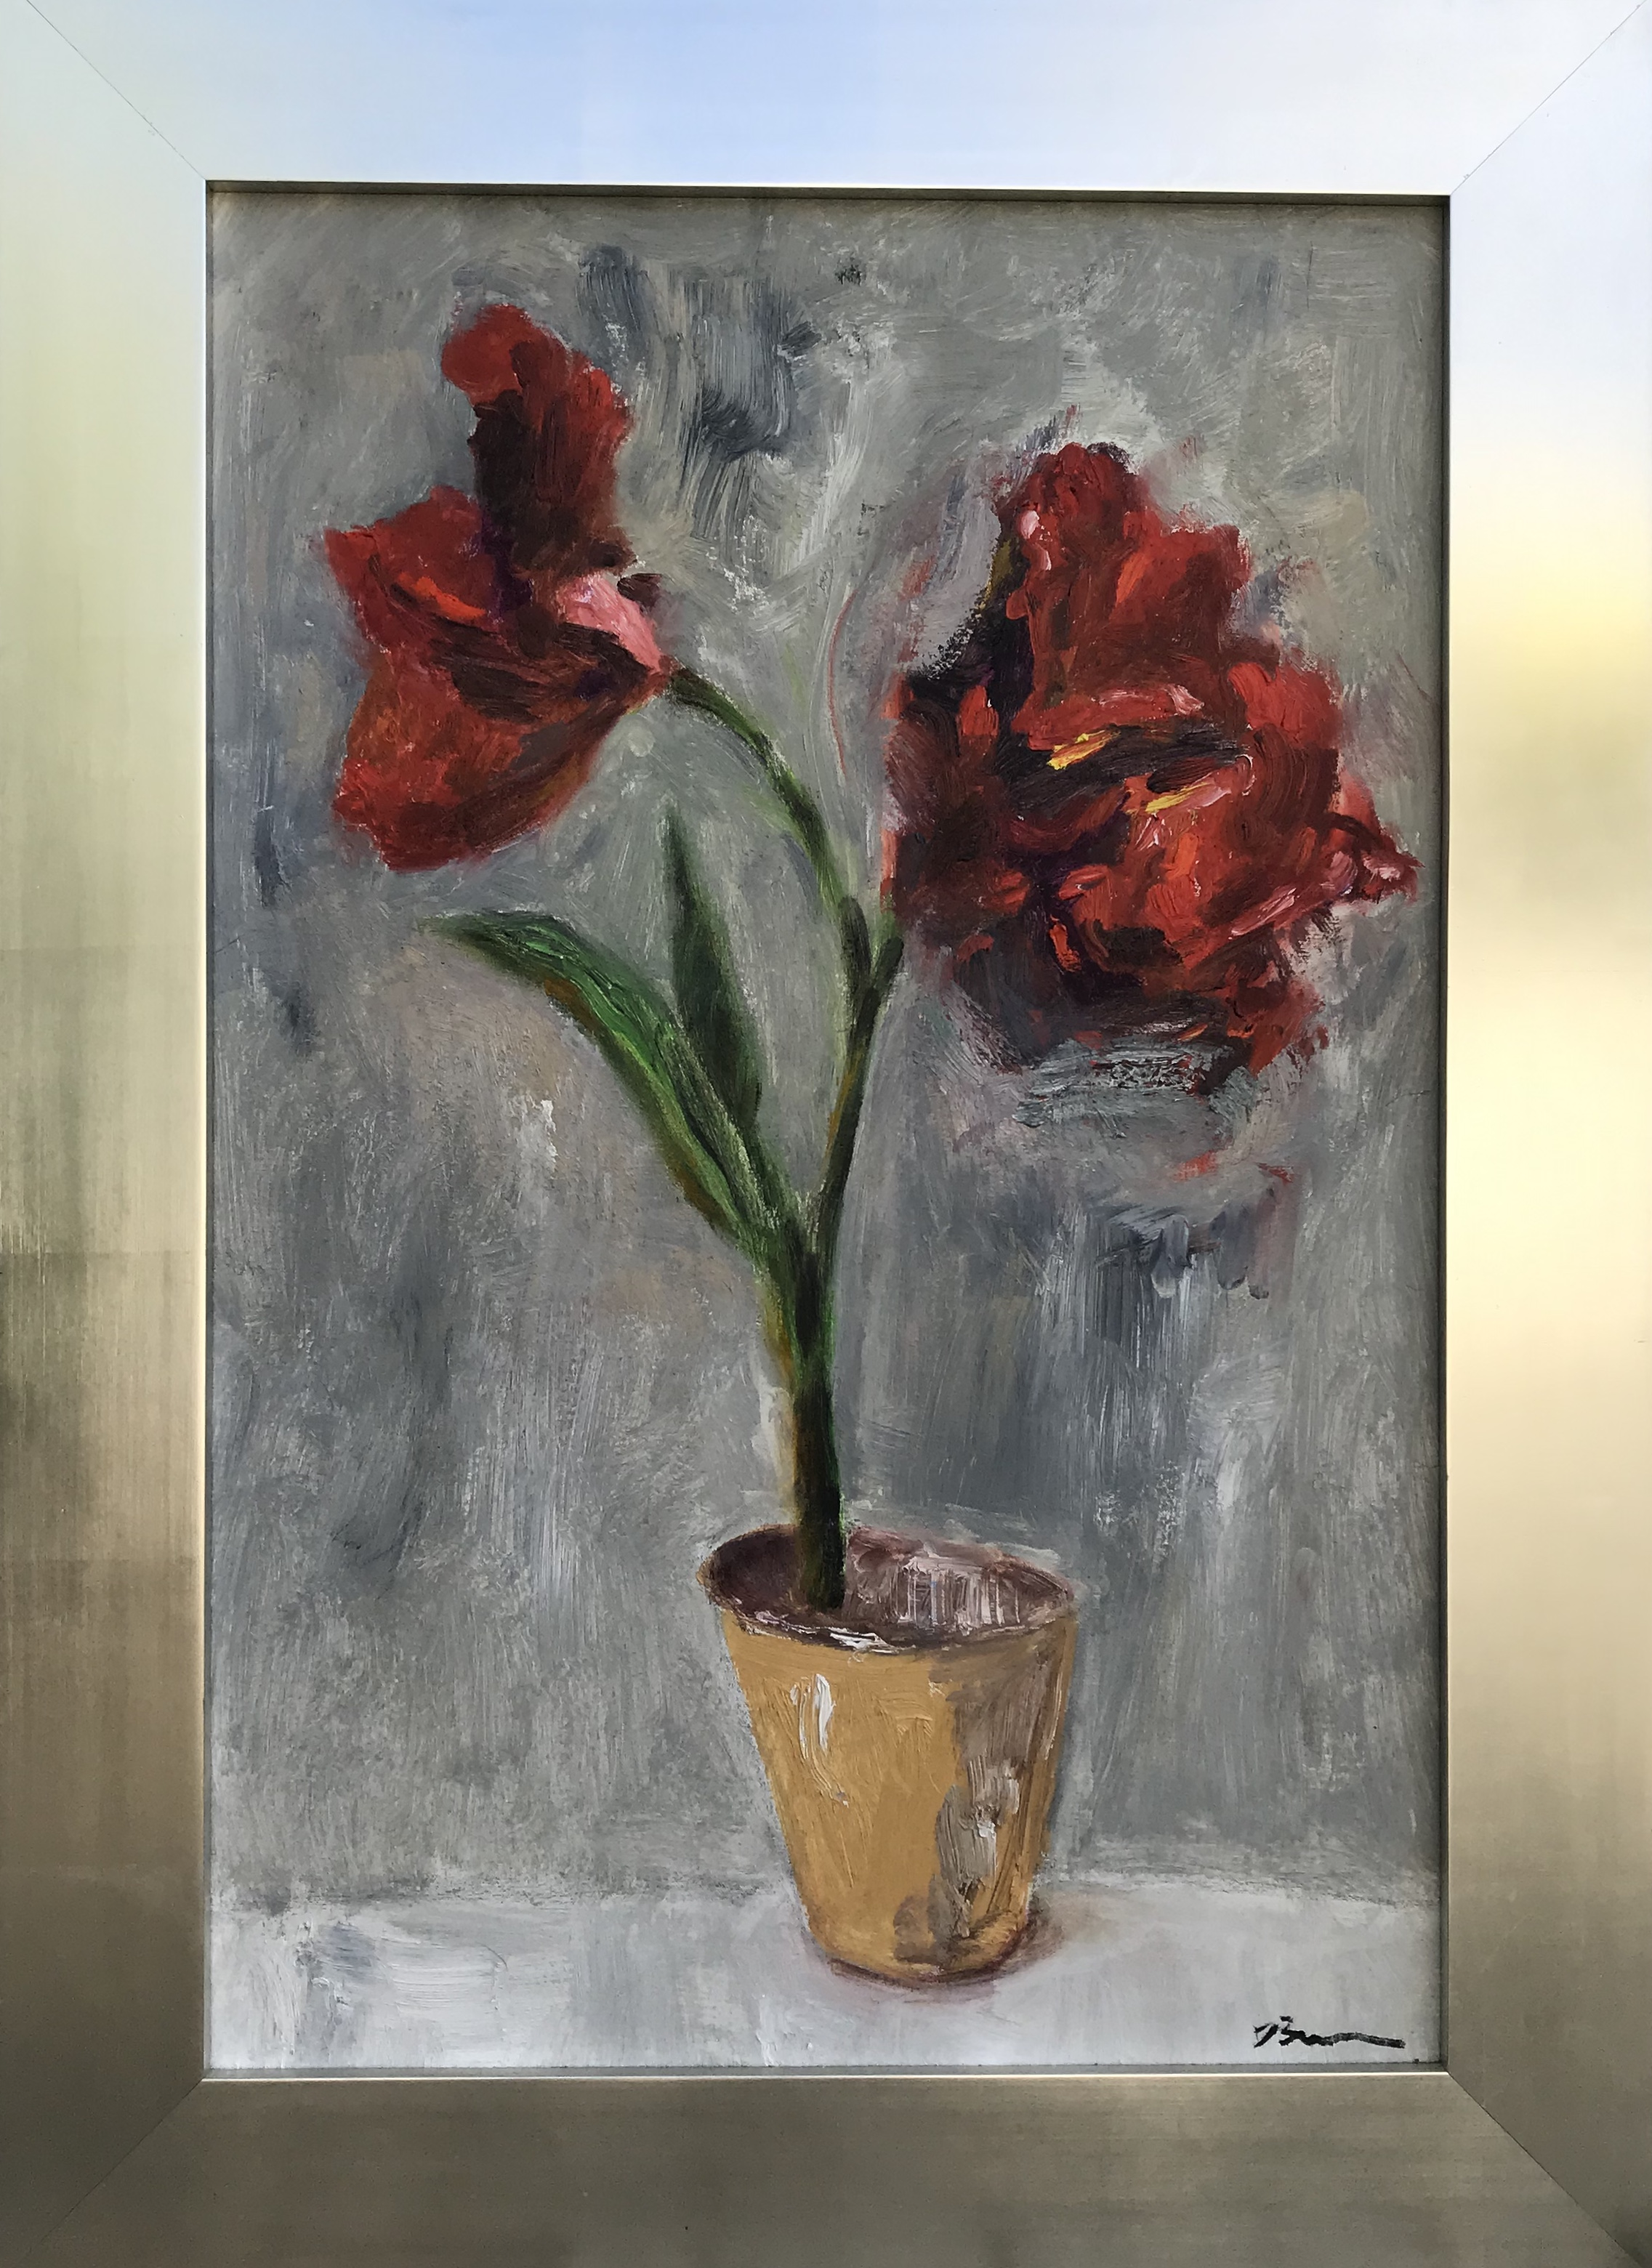 """""""Red Robin Red Robert"""" - 44"""" x 31"""" in silver plated frame, oil on canvasValue: $5,300Opening bid: $2,100email your bid to: art@bradfordbrenner.com"""